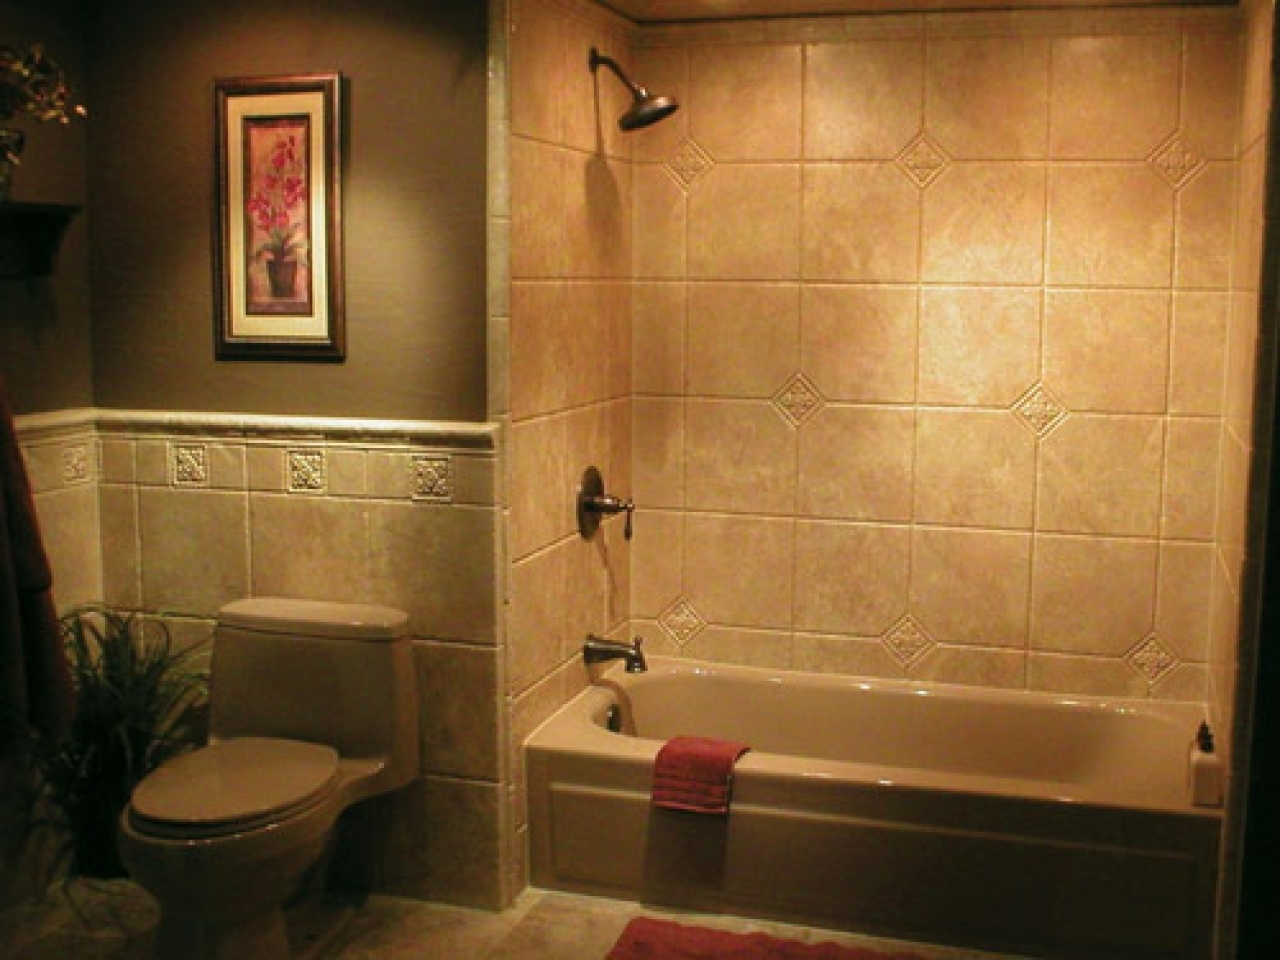 Bathroom Remodel Ideas Review Shopping Guide We Are Number One Where To Buy Cute Clothes